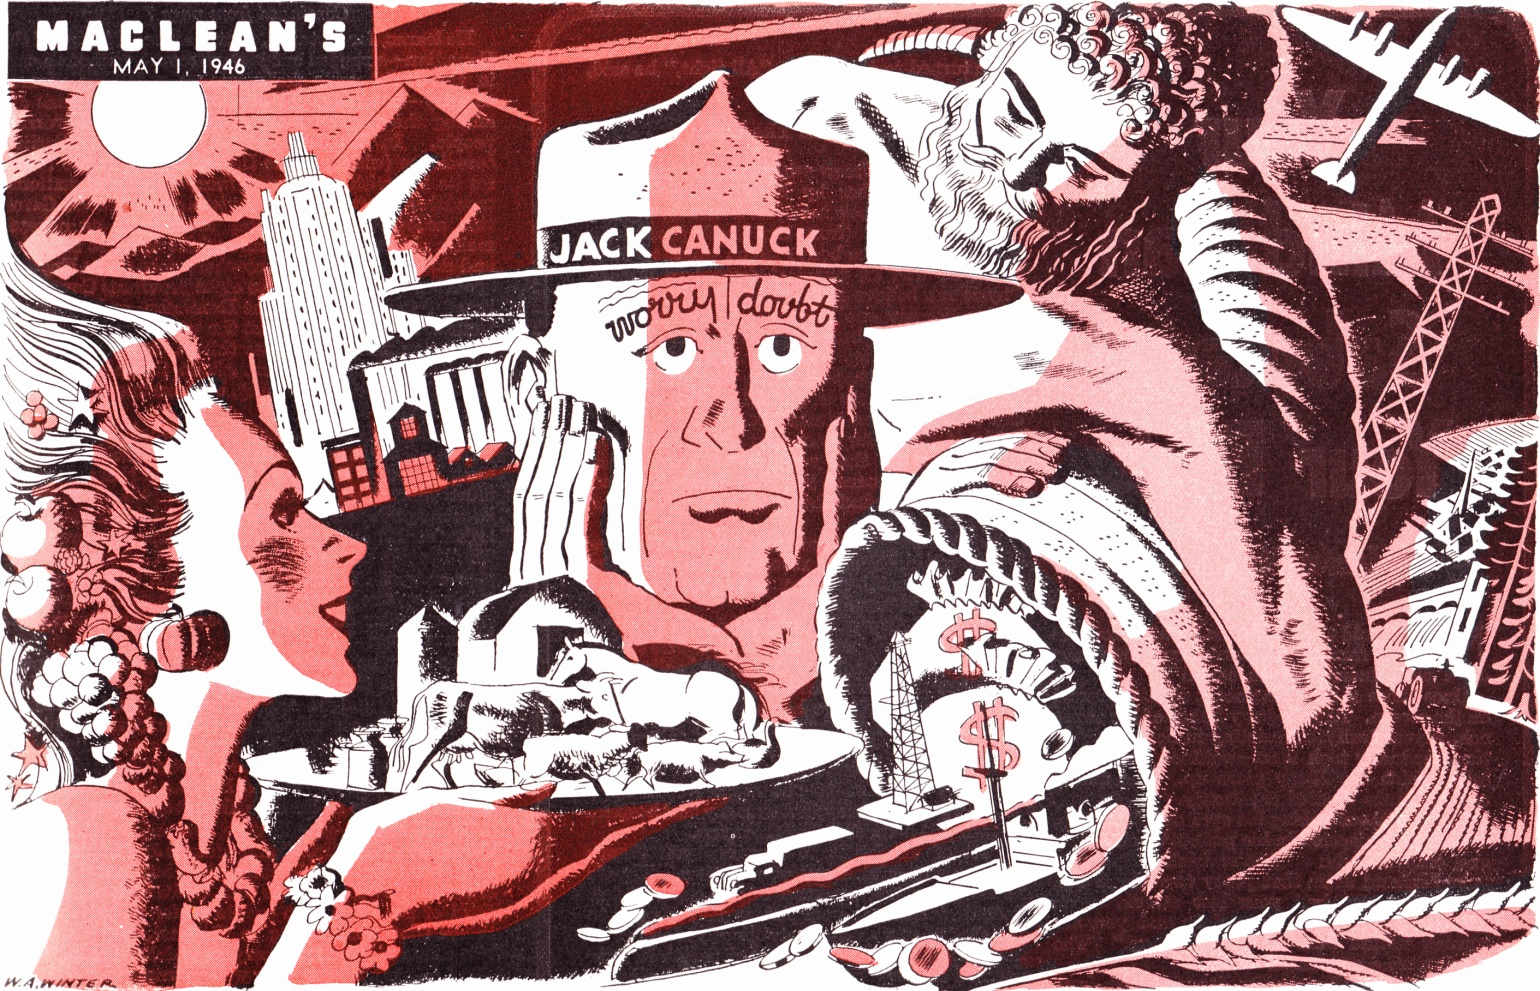 C:\Users\Robert\Documents\CARTOONING ILLUSTRATION ANIMATION\IMAGE CARTOON\IMAGE CARTOON J\JACK CANUCK  Maclean's, 1 May 1946, 7.jpg